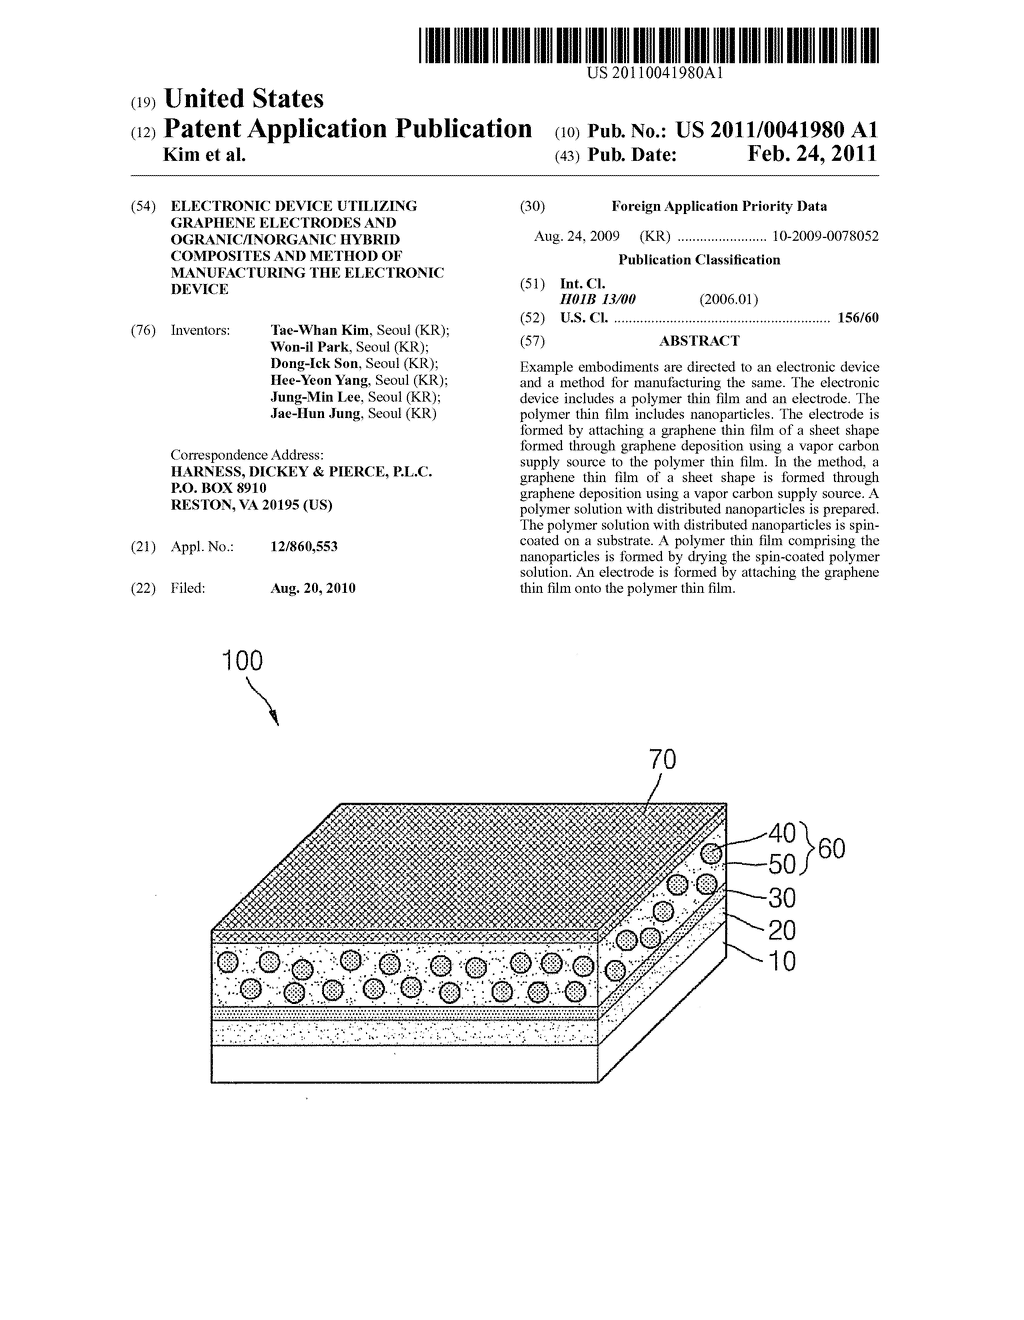 ELECTRONIC DEVICE UTILIZING GRAPHENE ELECTRODES AND OGRANIC/INORGANIC HYBRID COMPOSITES AND METHOD OF MANUFACTURING THE ELECTRONIC DEVICE - diagram, schematic, and image 01